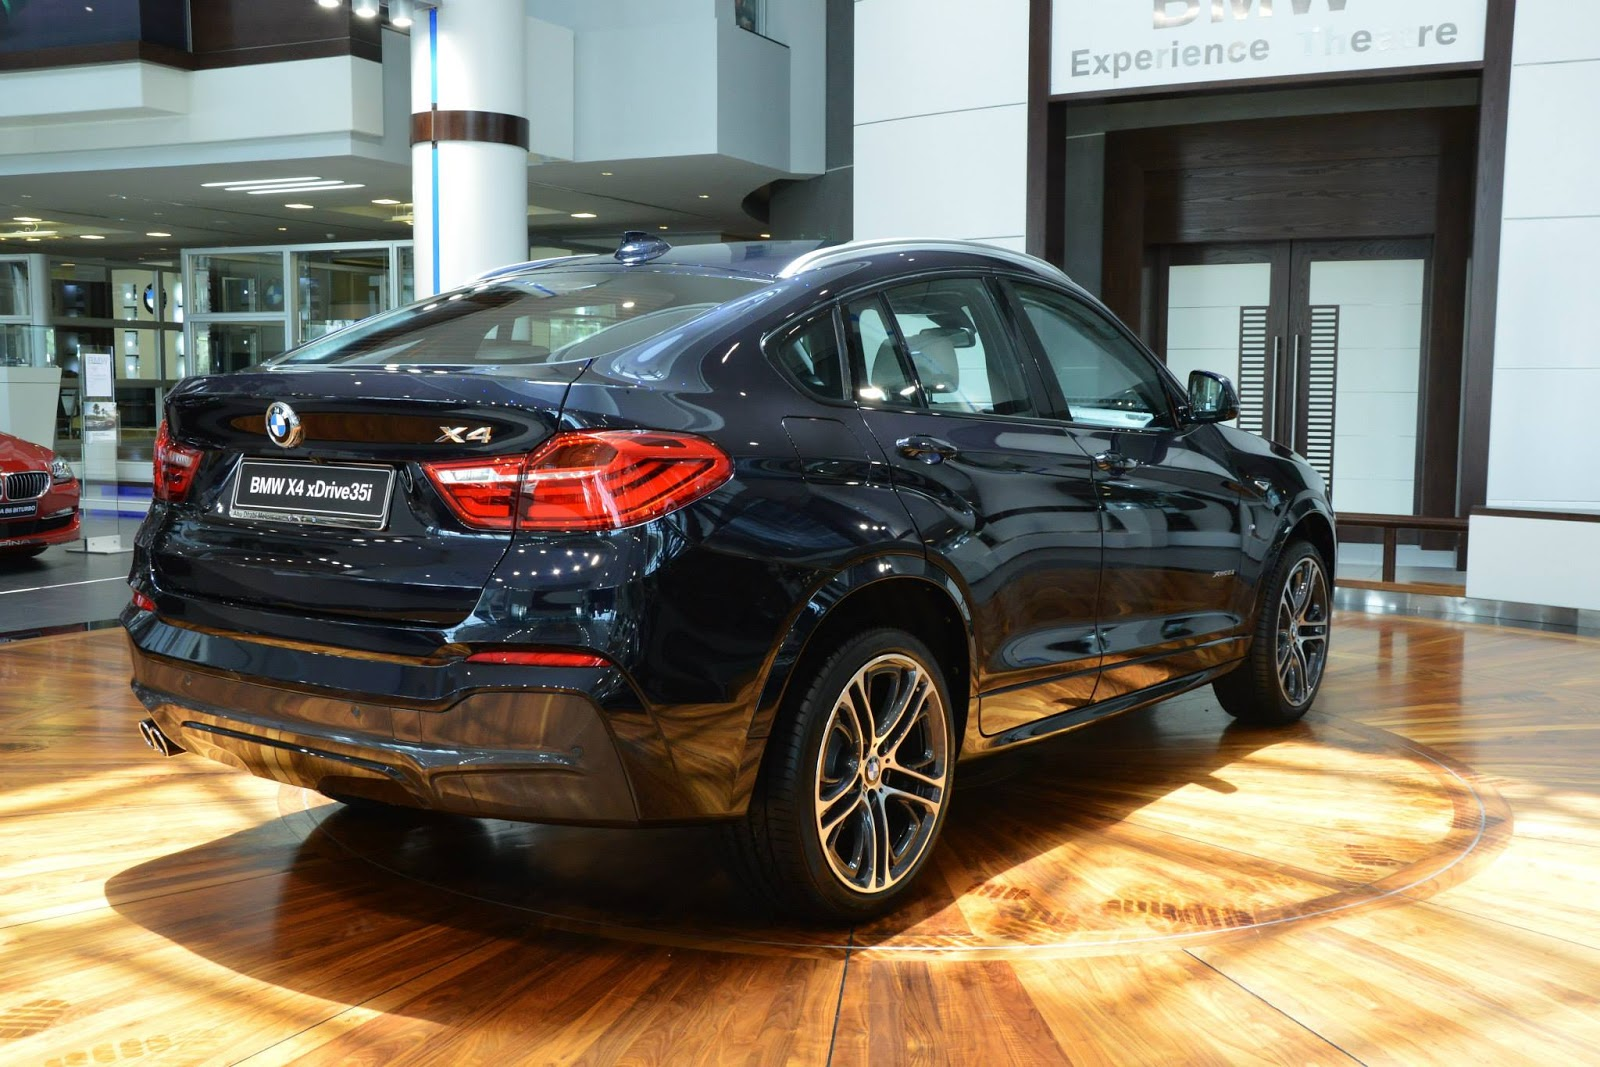 Lexus Of Melbourne >> BMW X4 M Sports in Melbourne Red and Carbon Black | Carscoops